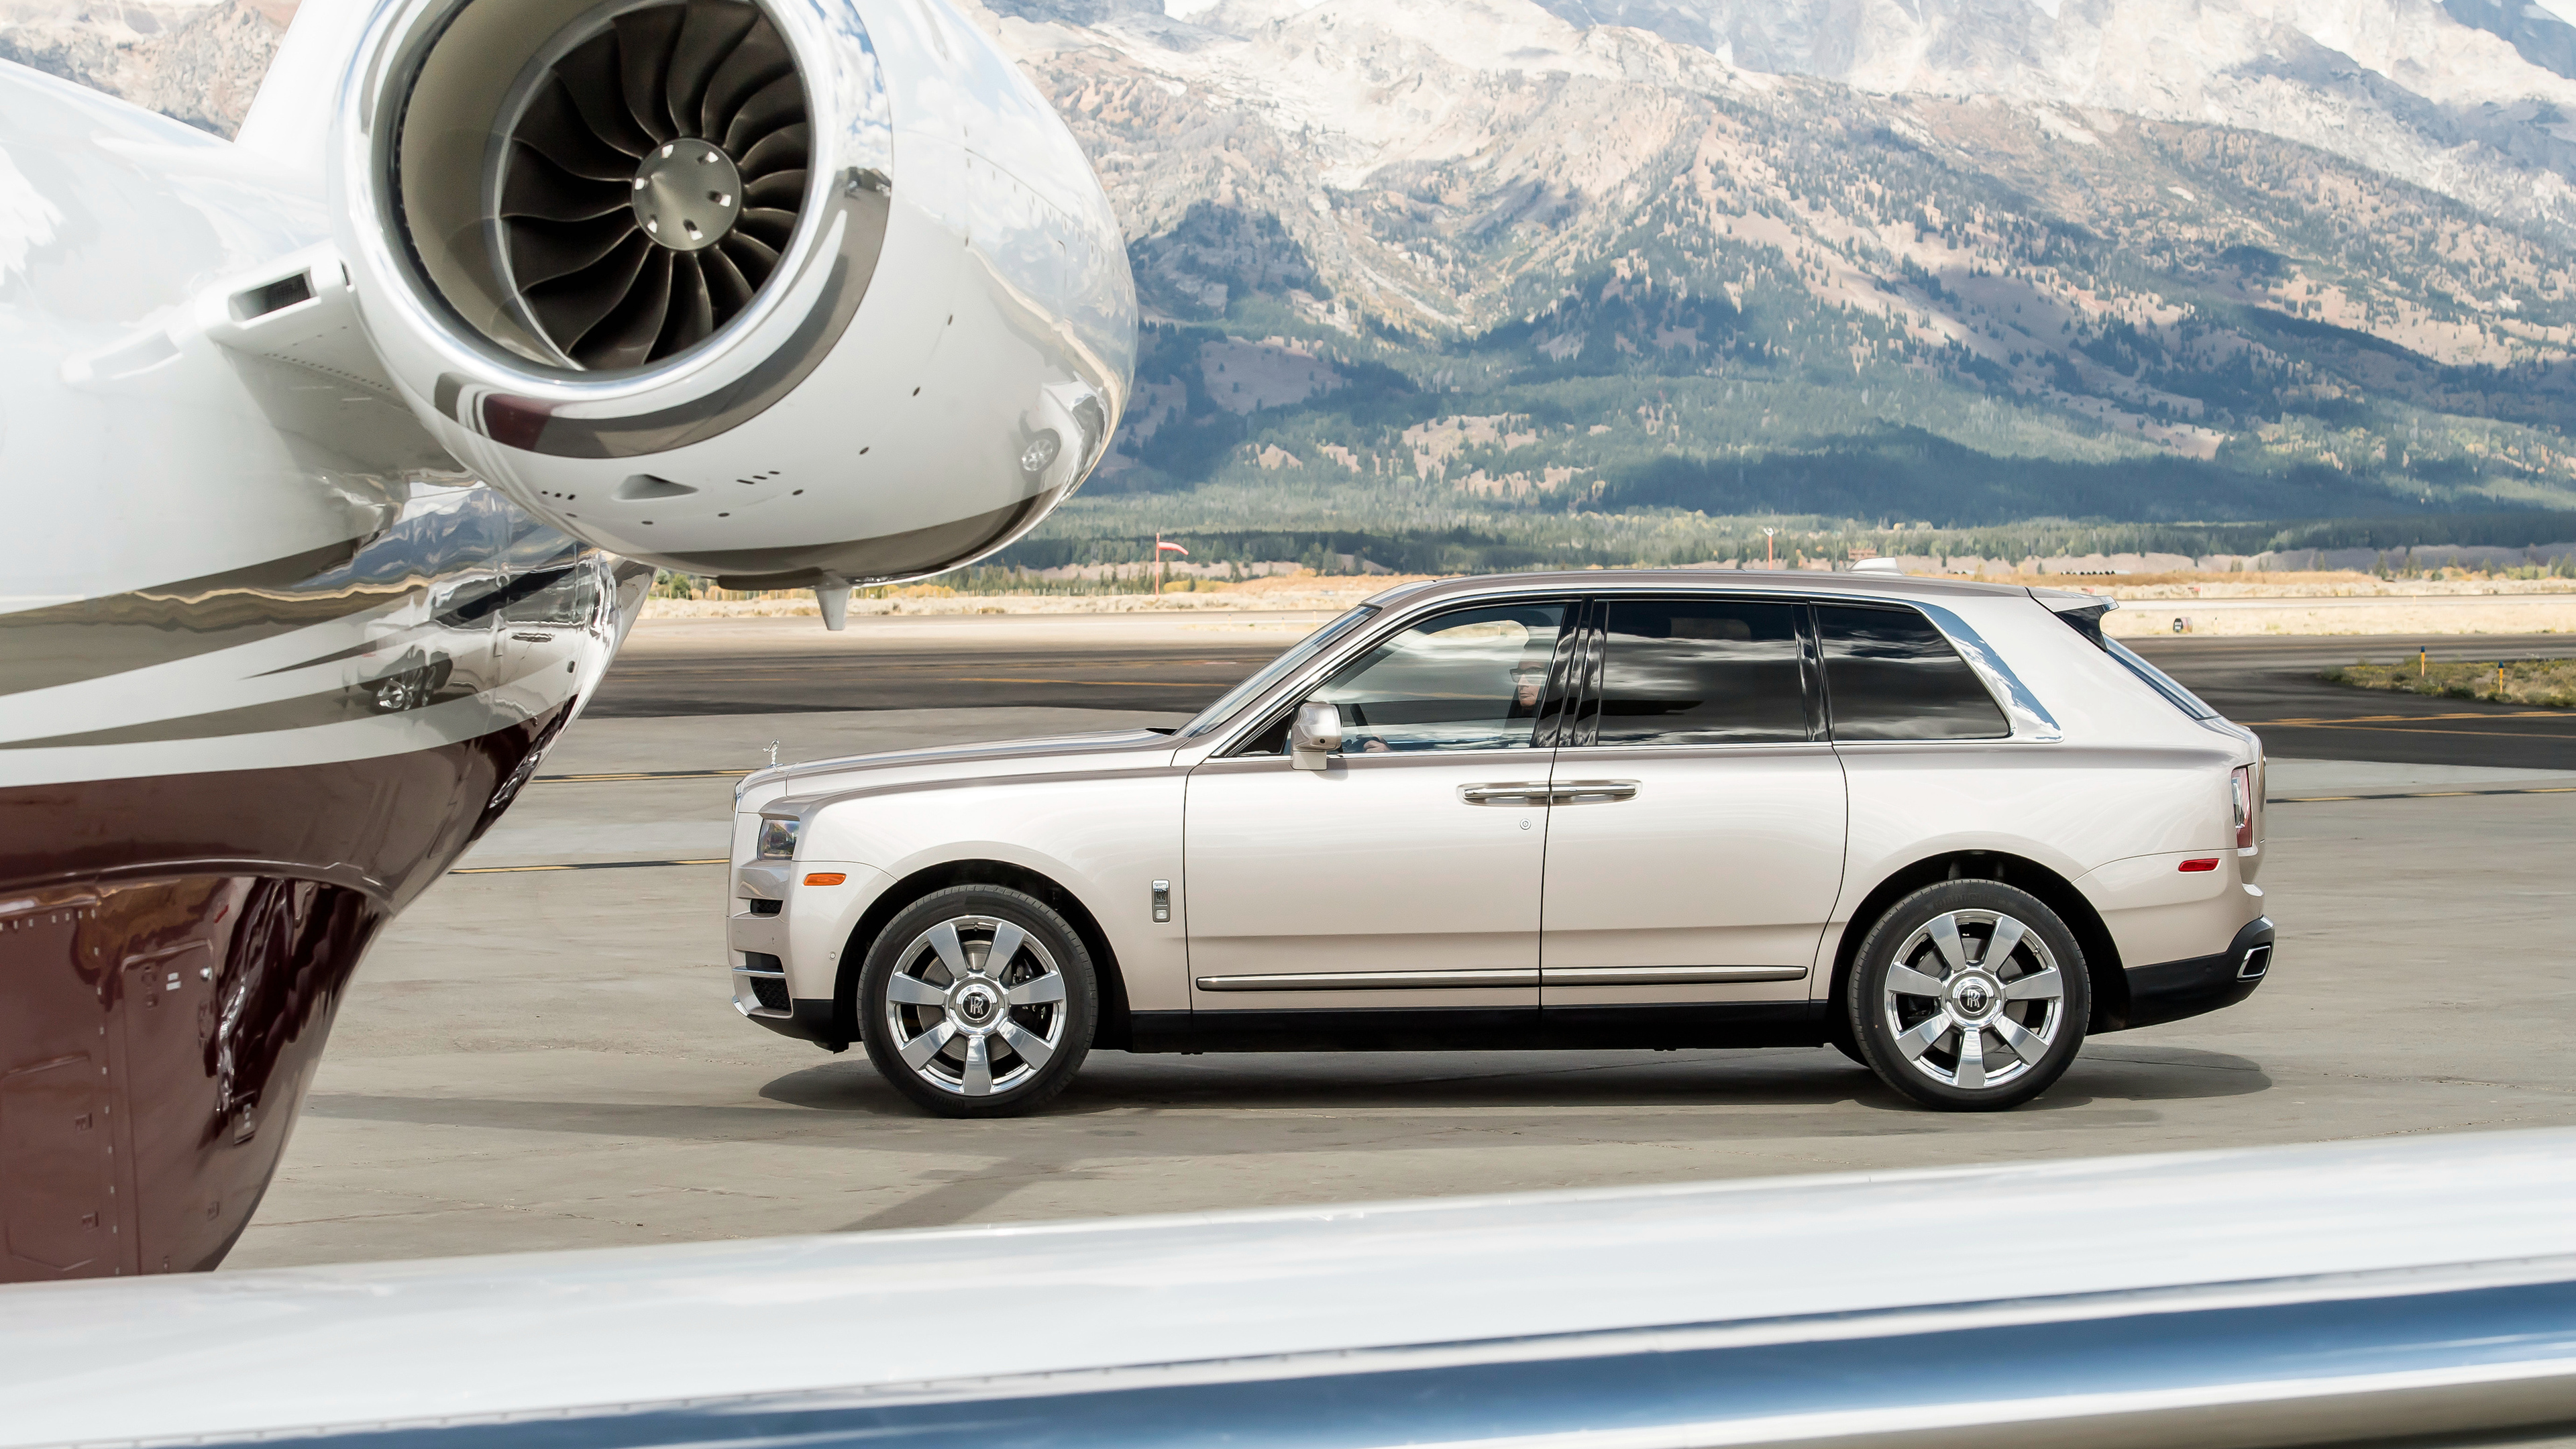 2019 rolls royce cullinan 1539792878 - 2019 Rolls Royce Cullinan - rolls royce wallpapers, rolls royce cullinan wallpapers, hd-wallpapers, cars wallpapers, 4k-wallpapers, 2019 cars wallpapers